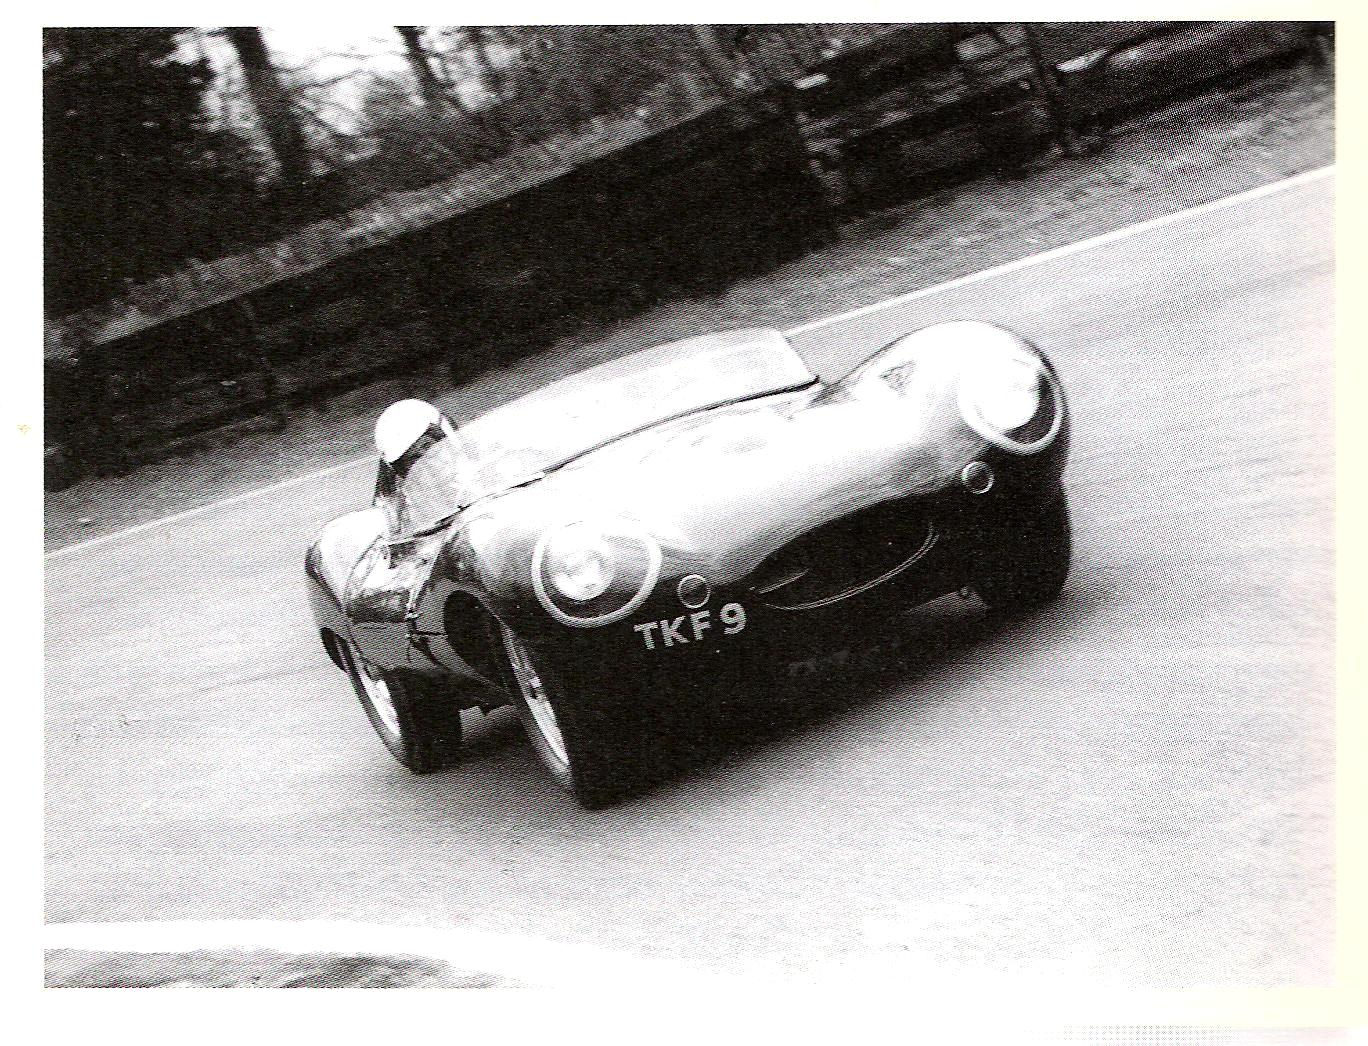 I  drove TKF9 at Oulton Park for an Autocar feature of 20 June 1968